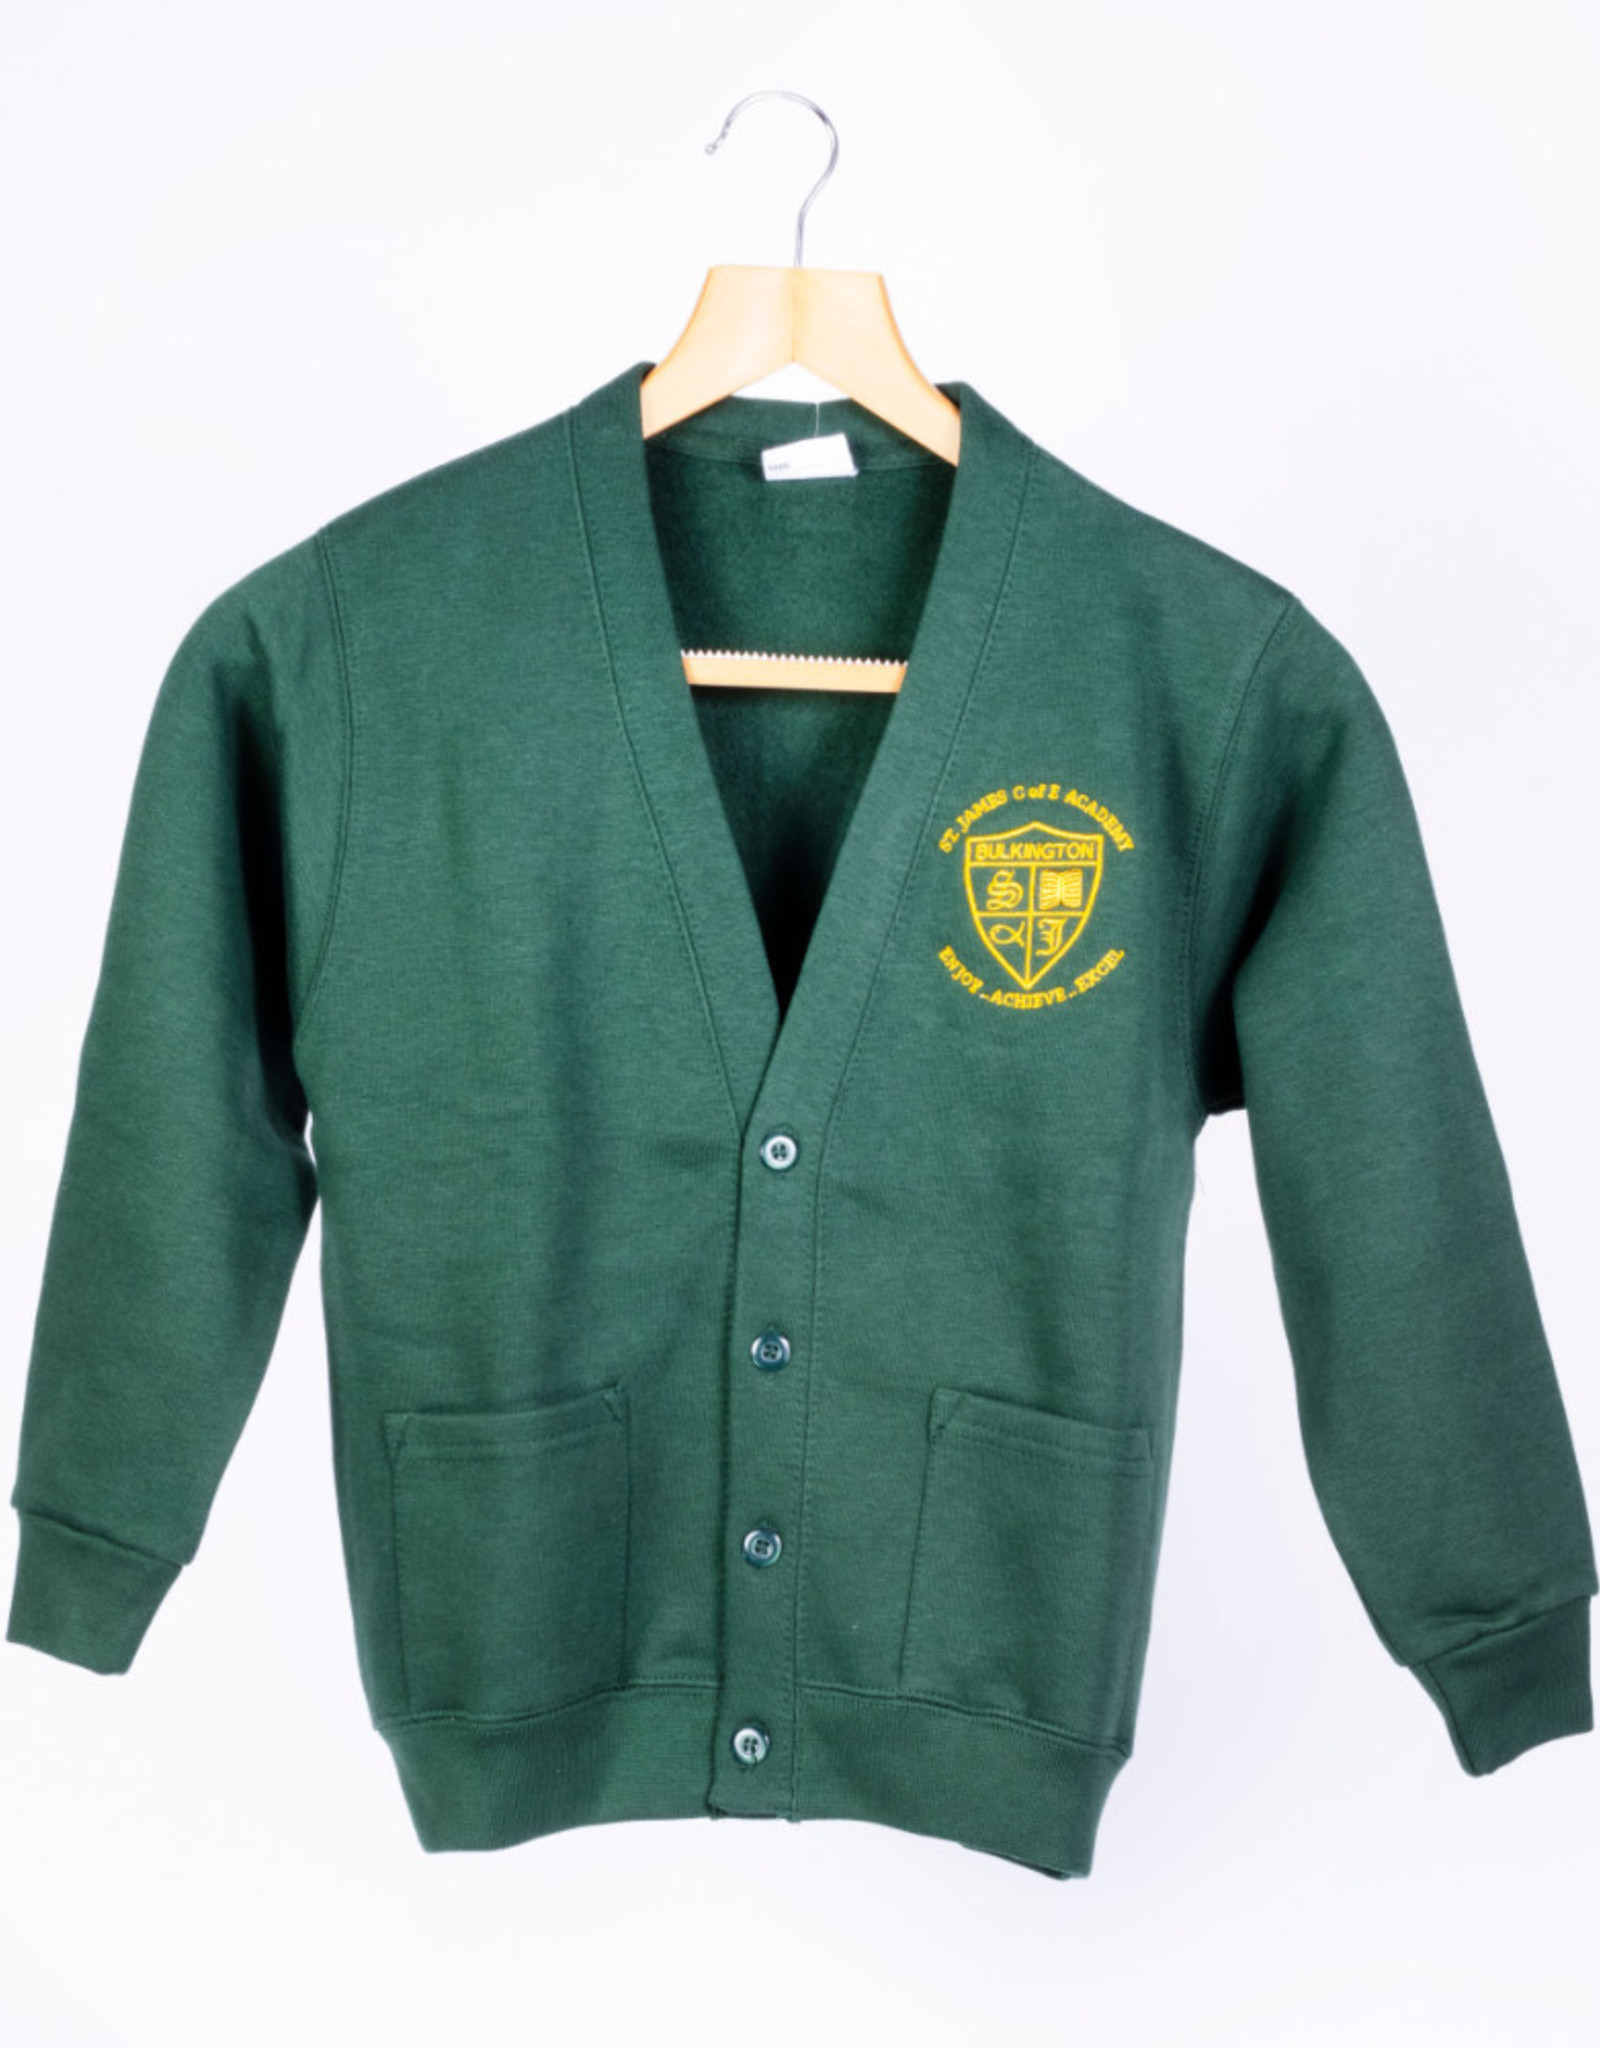 select Cardigan Child Size - St James CE Academy